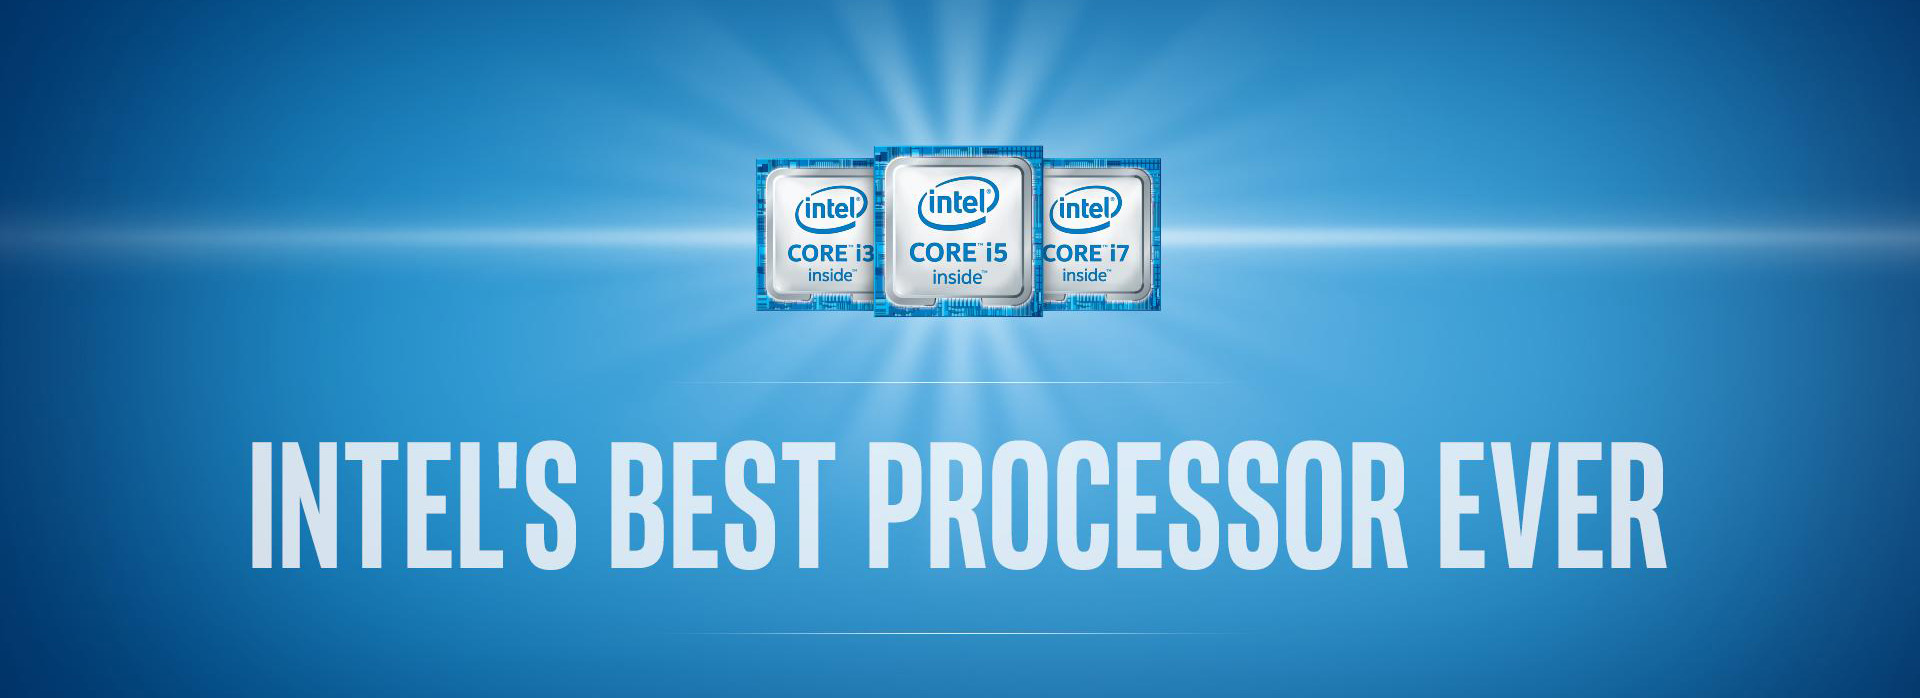 Intels Best Ever Processor